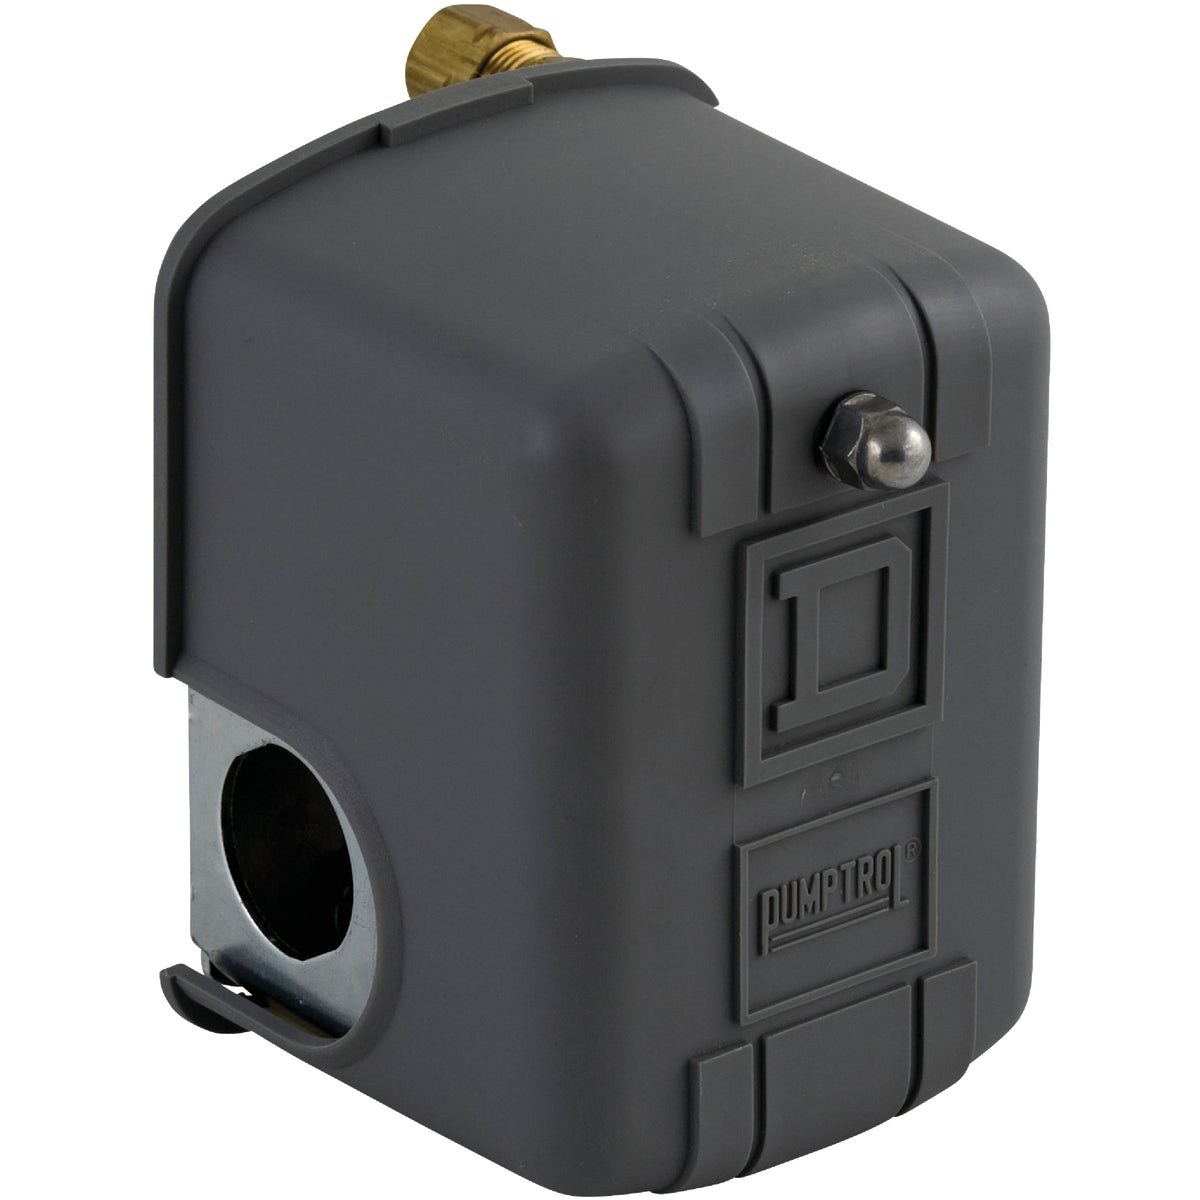 95-125PSI PRESURE SWITCH - FHG12J52XBP by Square D Co